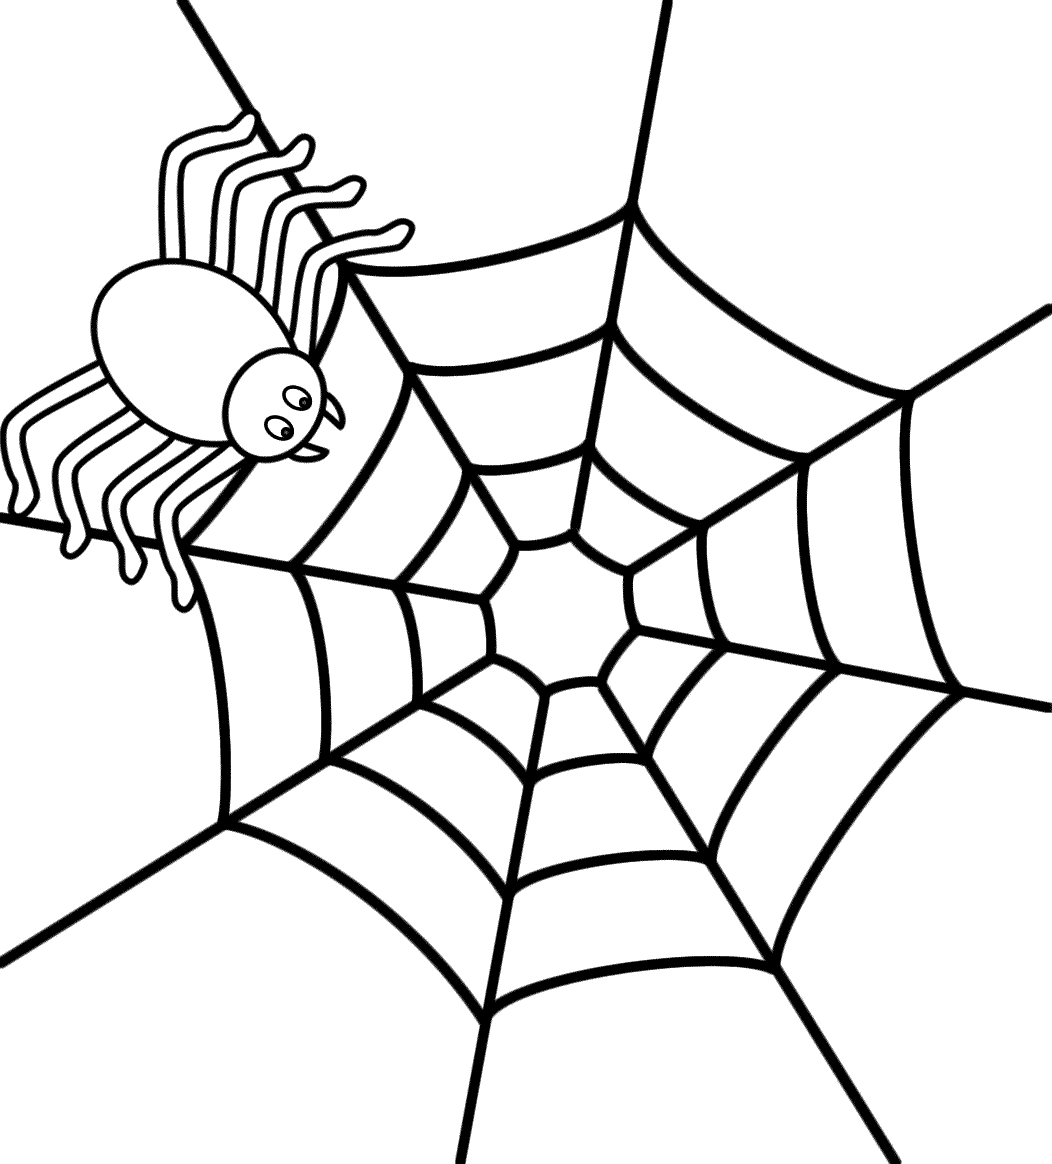 printable spiders halloween spider coloring pages at getcoloringscom free printable spiders